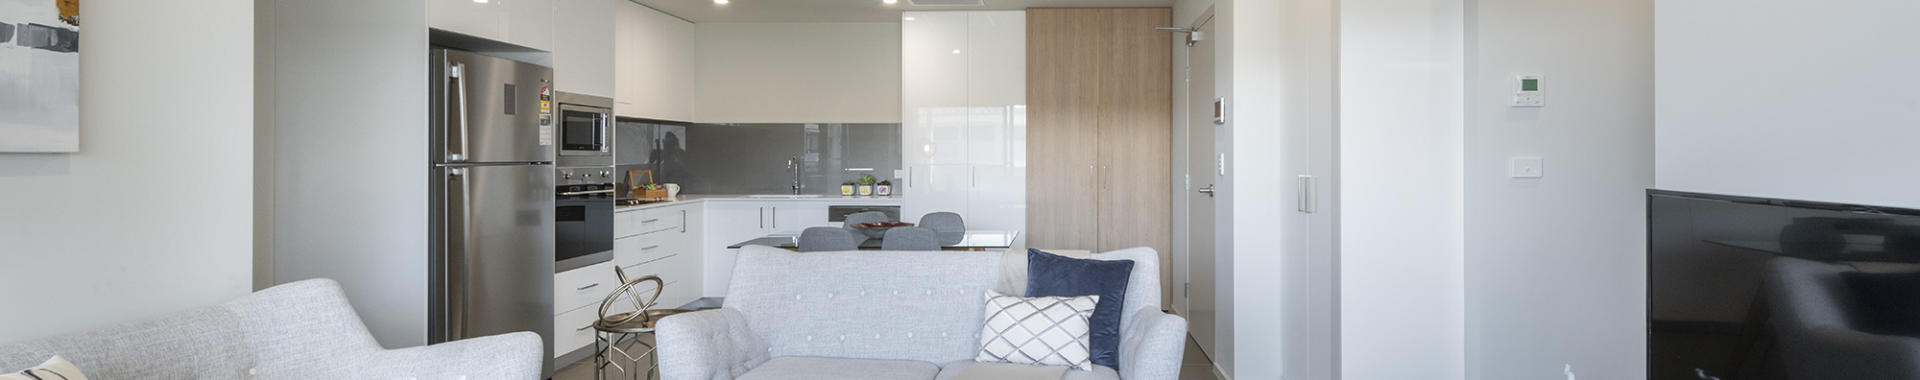 Newcastle Llewellyn 2 bed corporate apartment open plan